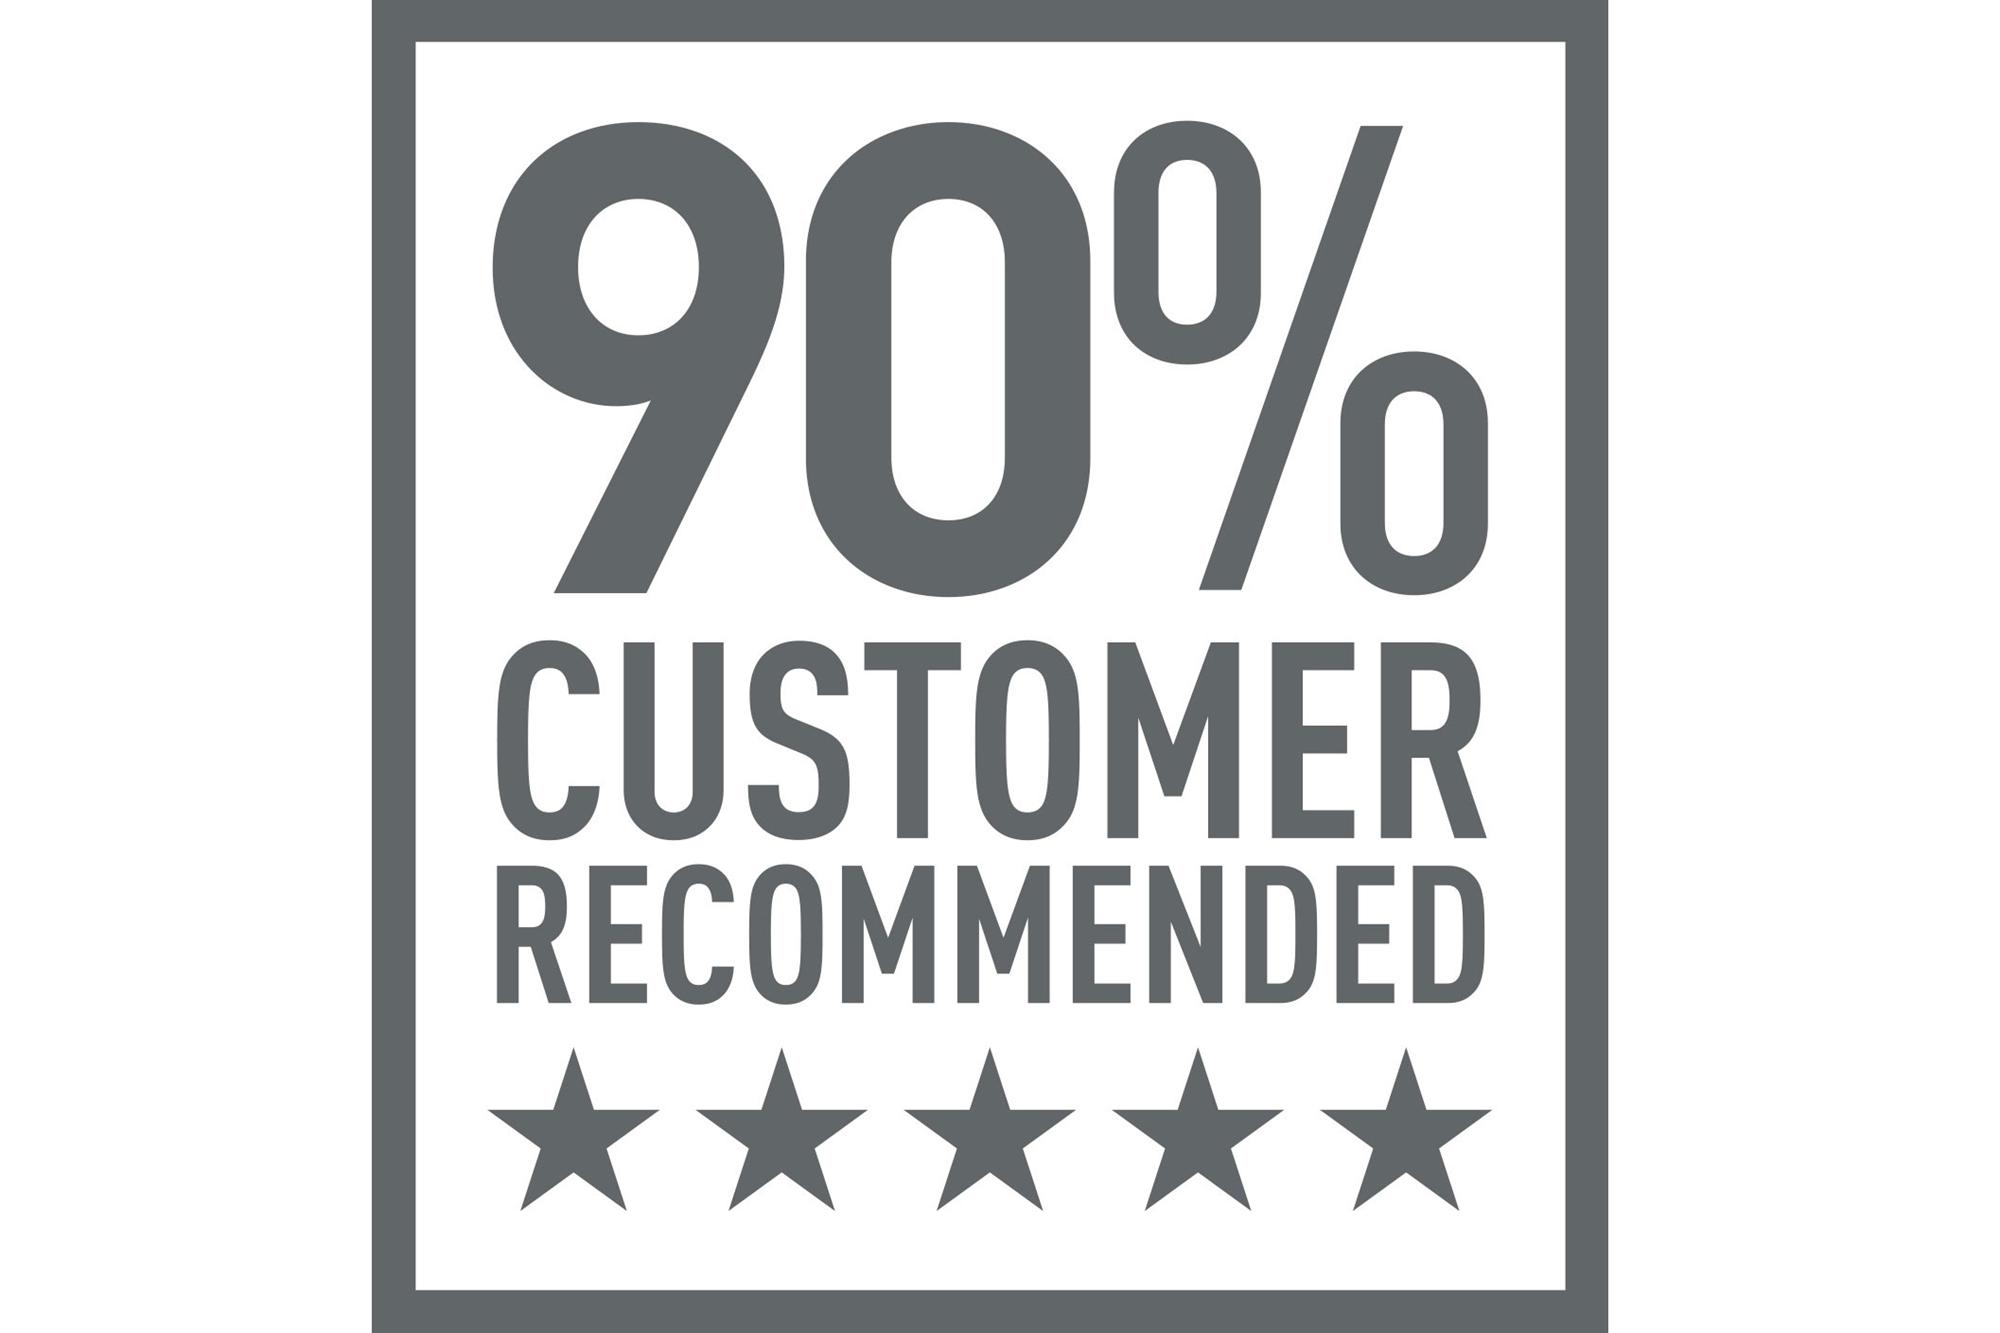 90 per cent customer recommended